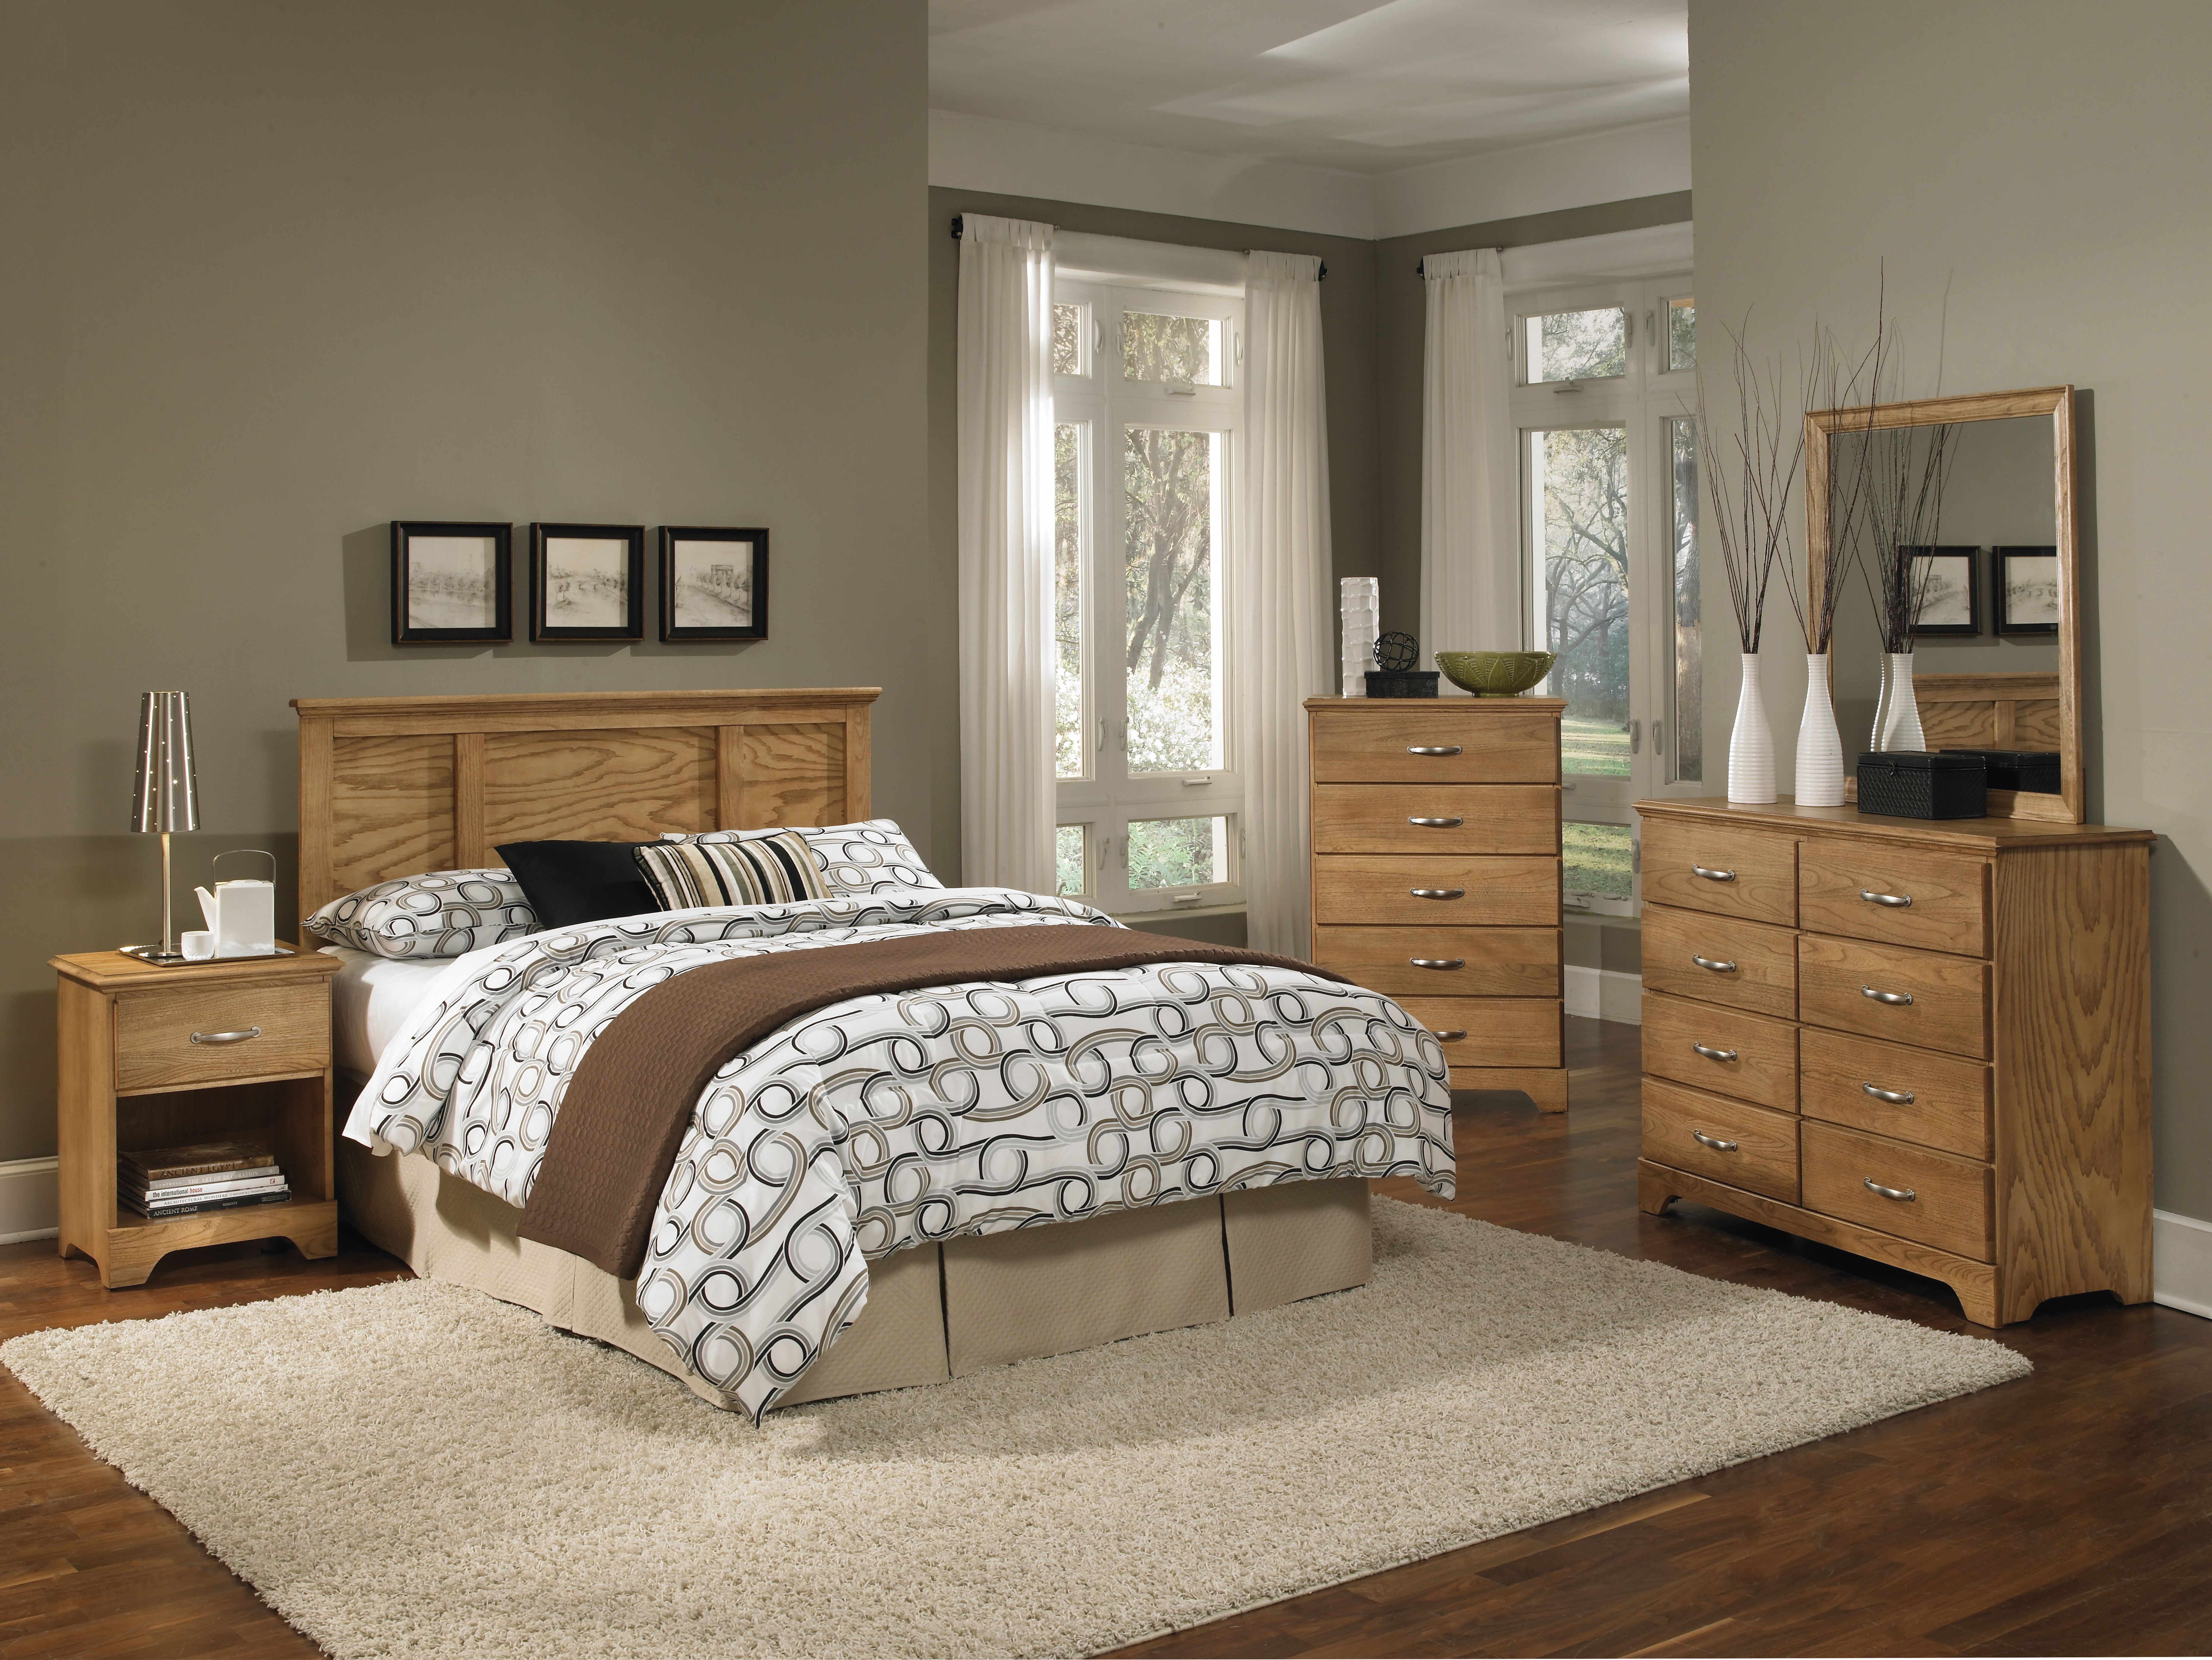 Sterling Bedroom Collection made in Sumter SC by Carolina